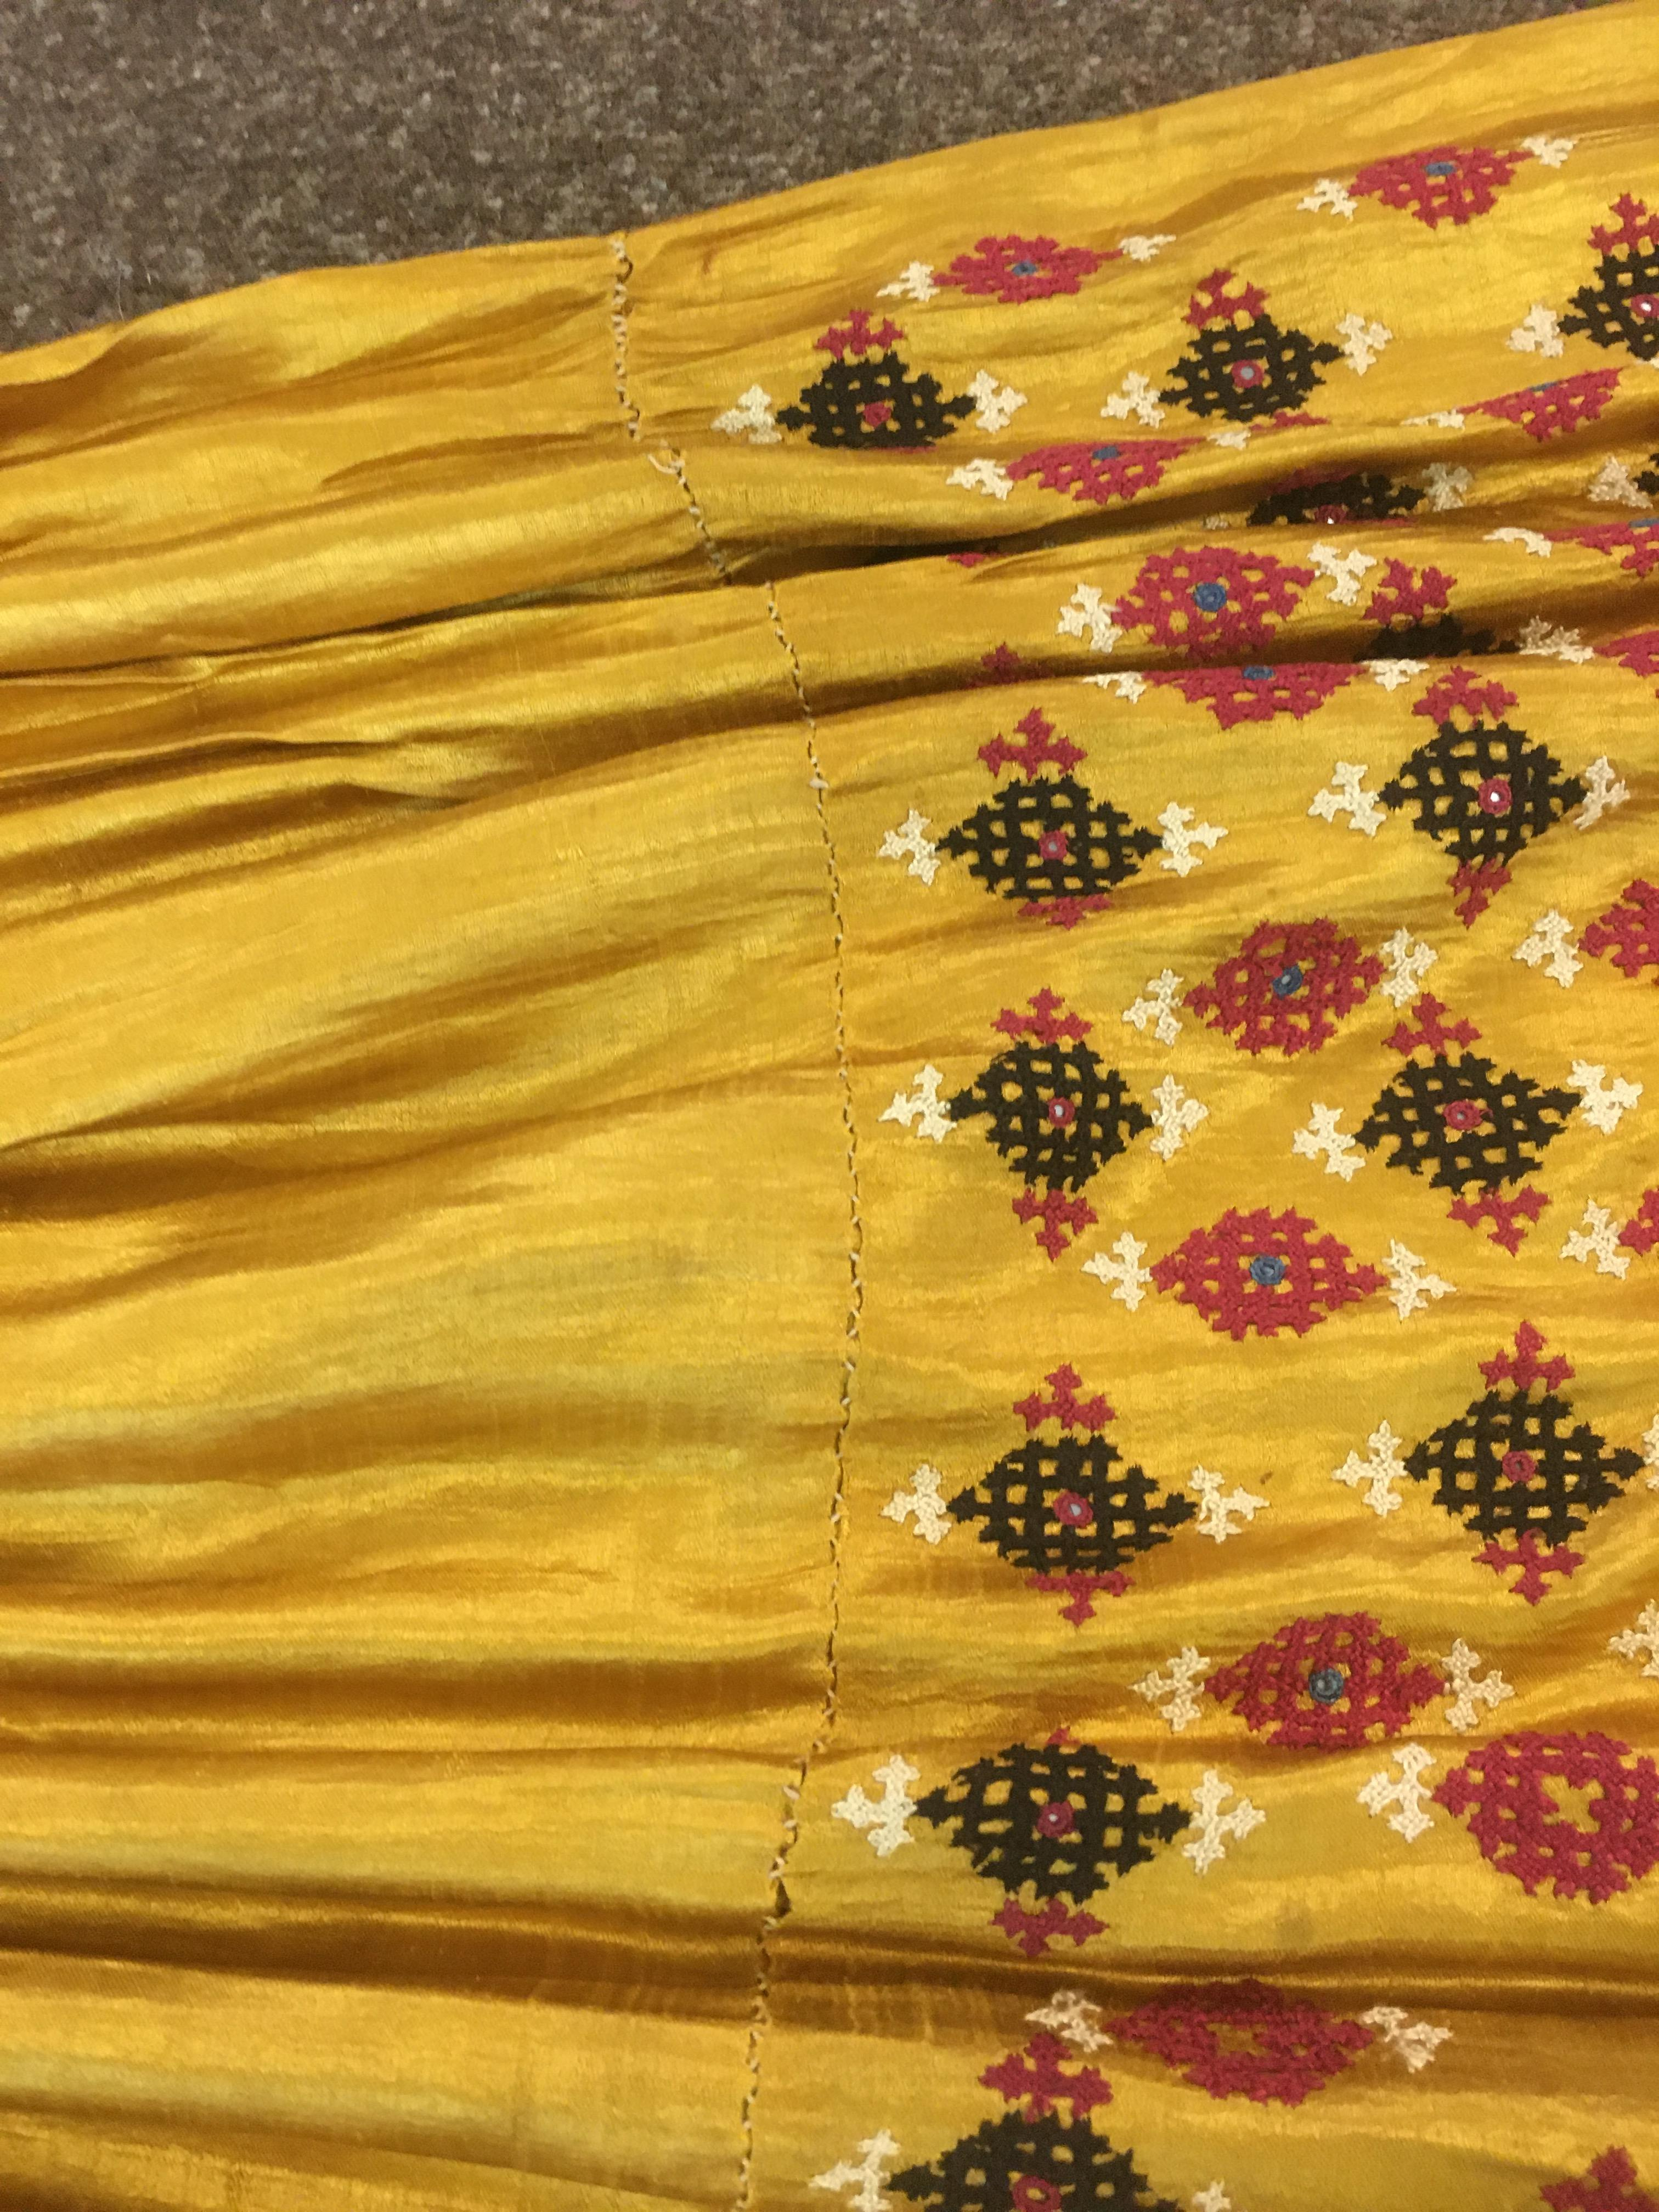 ANTIQUE INDIAN SKIRT a full length gathered skirt made from 19thc gold coloured silk, embroidered - Image 3 of 5